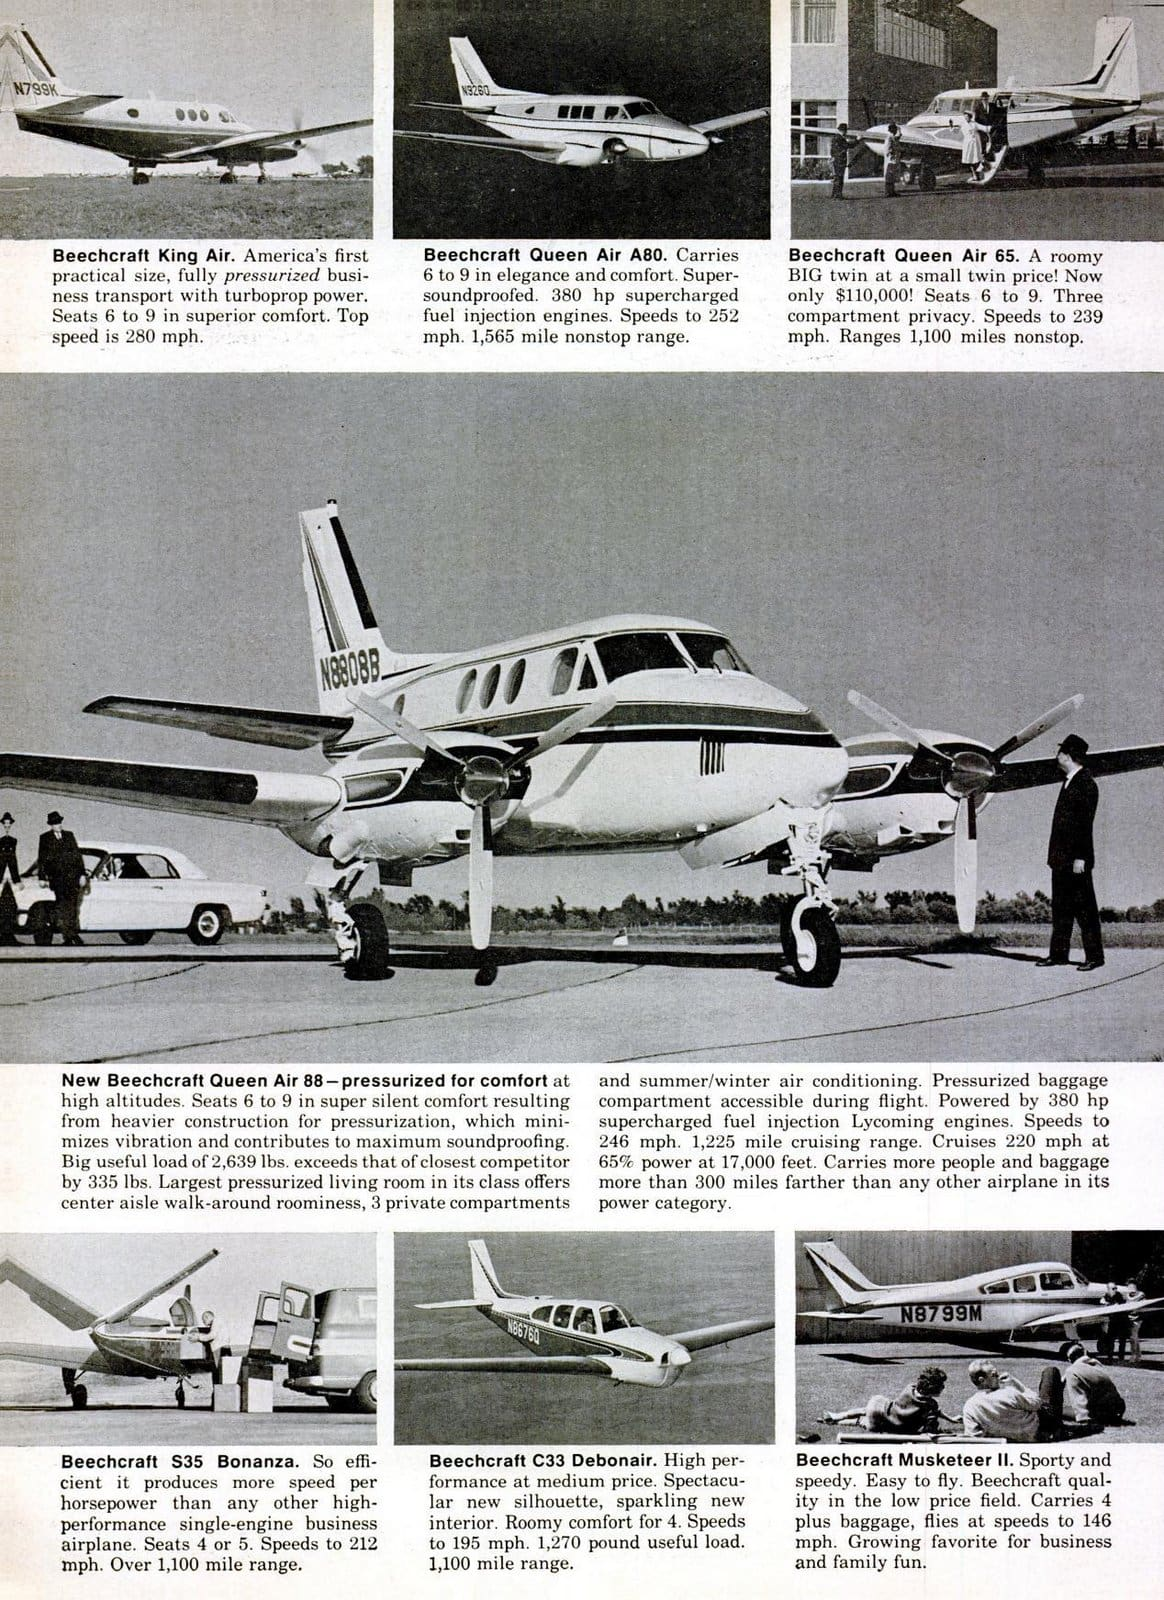 The 10 Beechcraft aircraft styles available in 1965 (2)